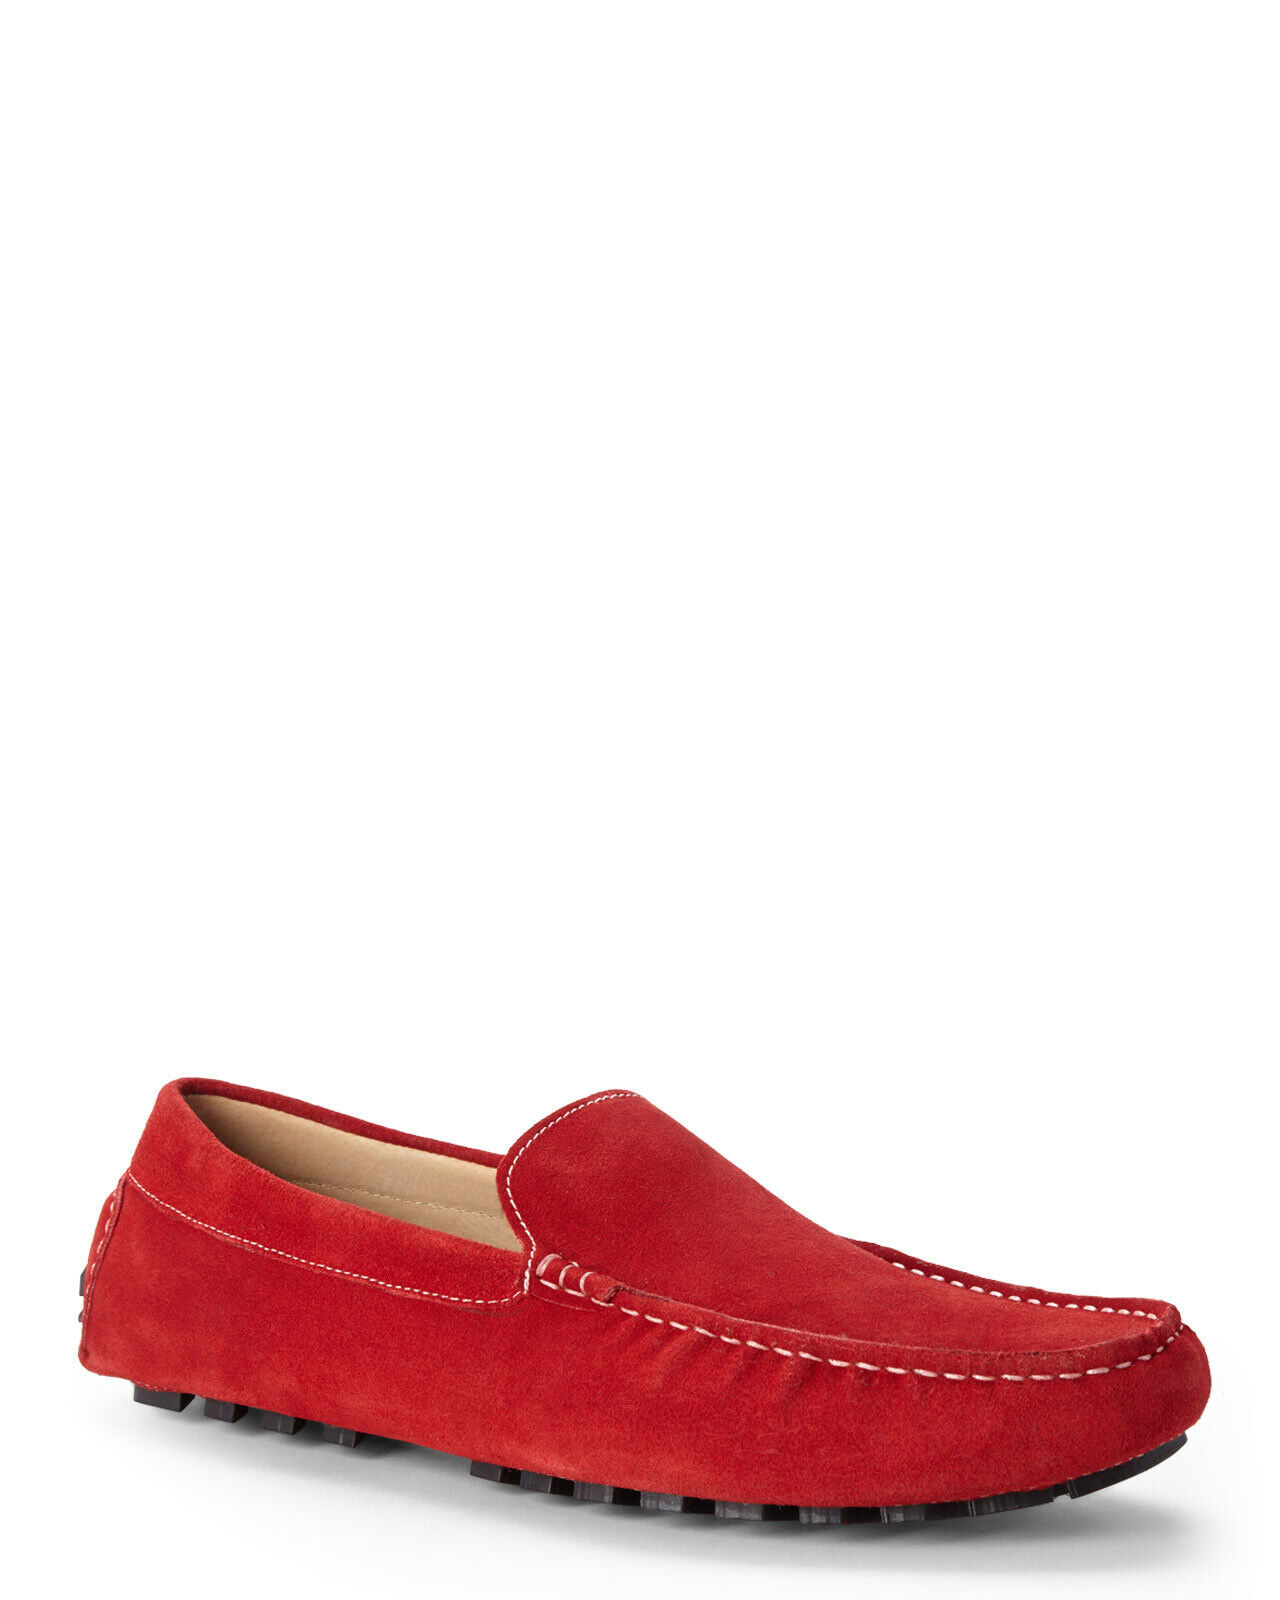 NEW ZANZARA SZ 10.5 RED SUEDE PICASSO SLIP ON LOAFERS MOCASSIN